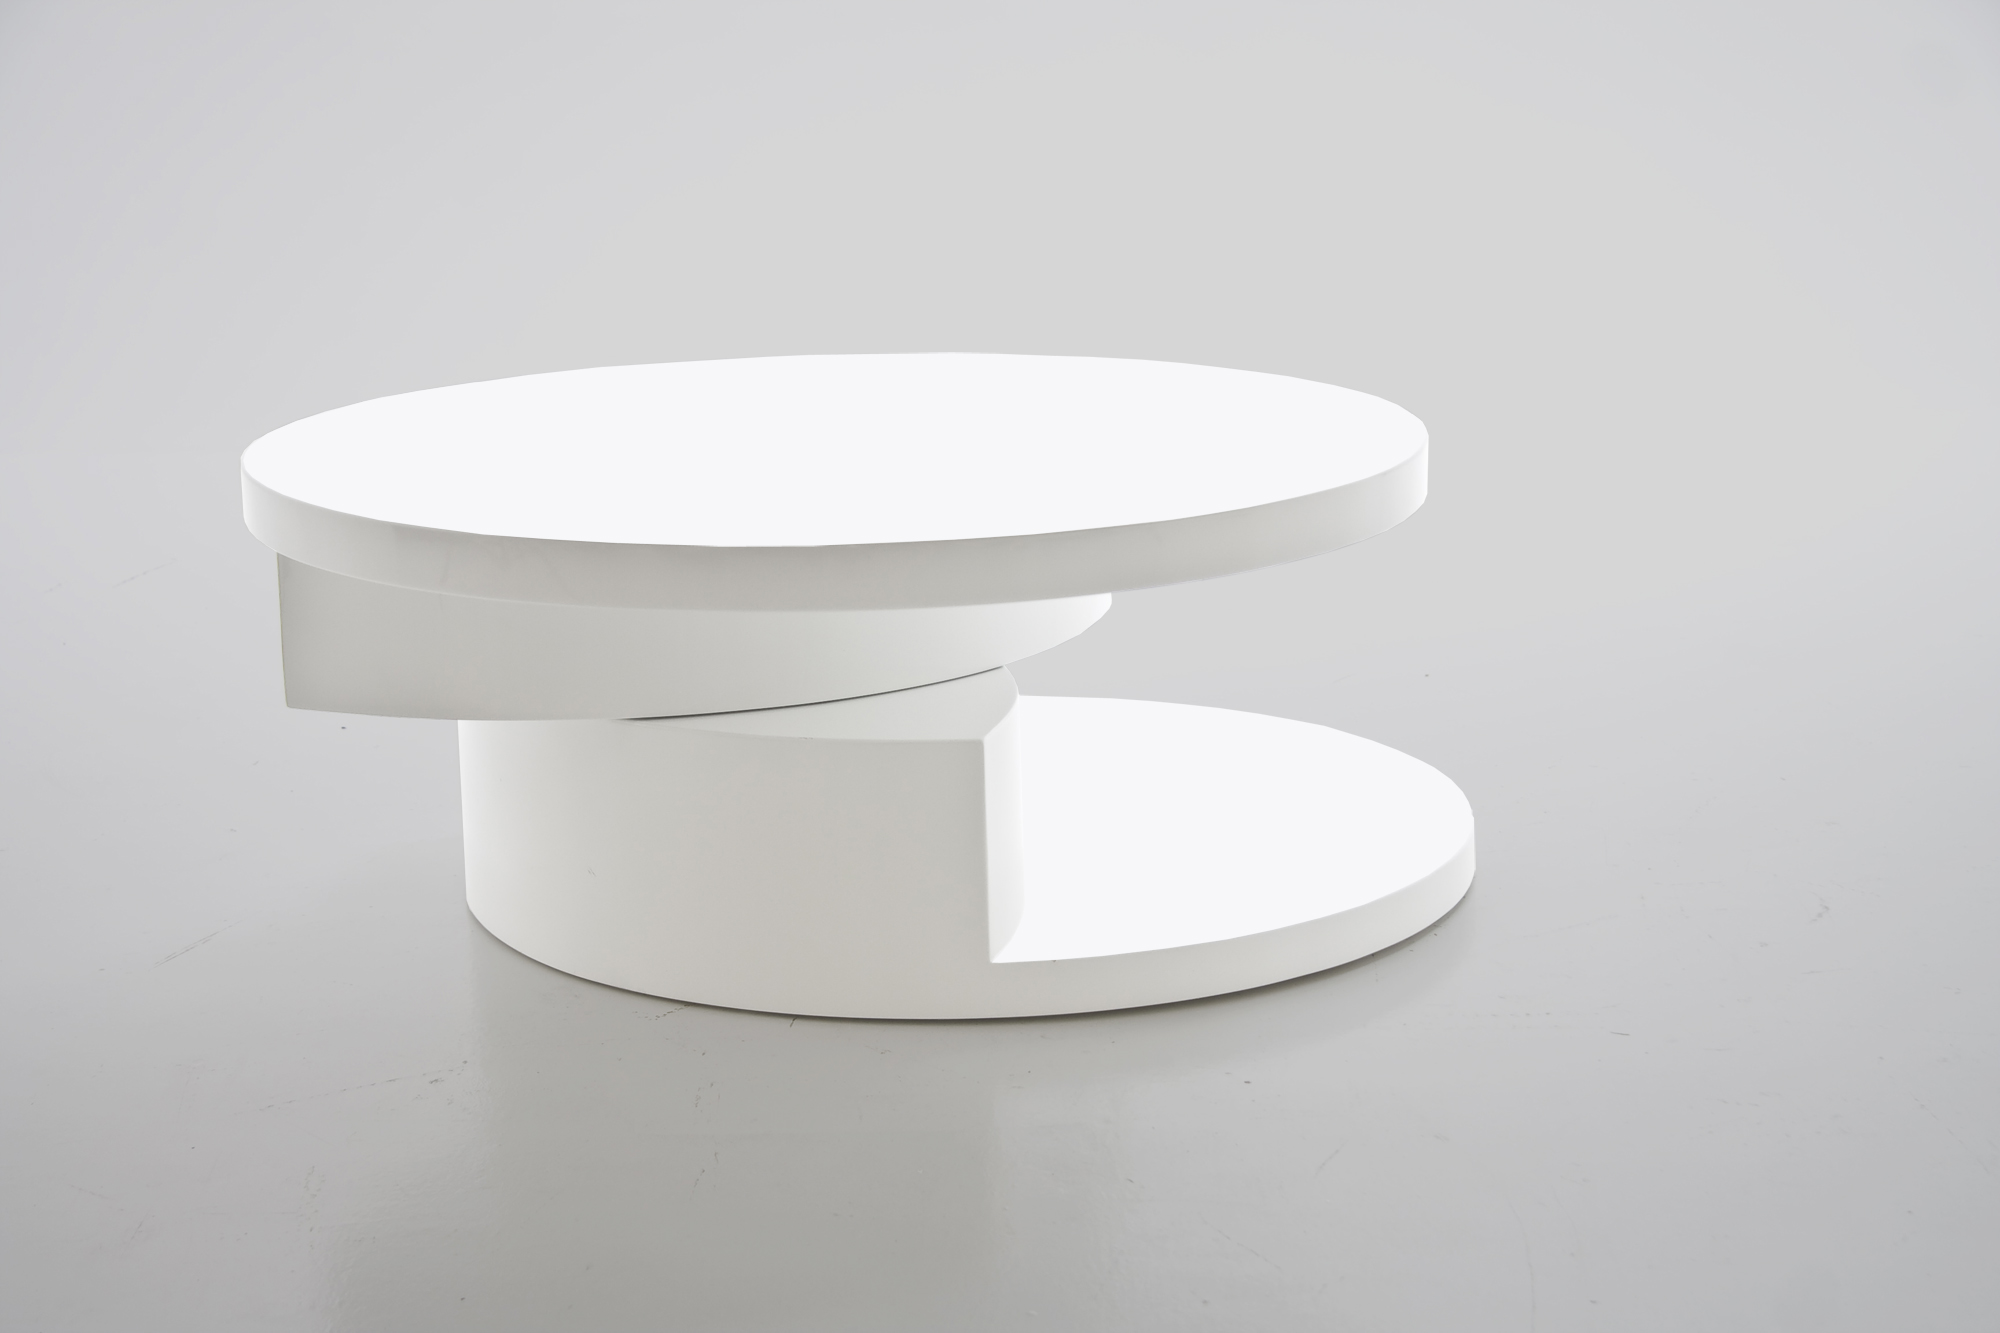 White Coffee Table Ideas Round White Coffee Tables Some Round Coffee Tables Can Have An Unusual Form And Shape (Image 10 of 10)